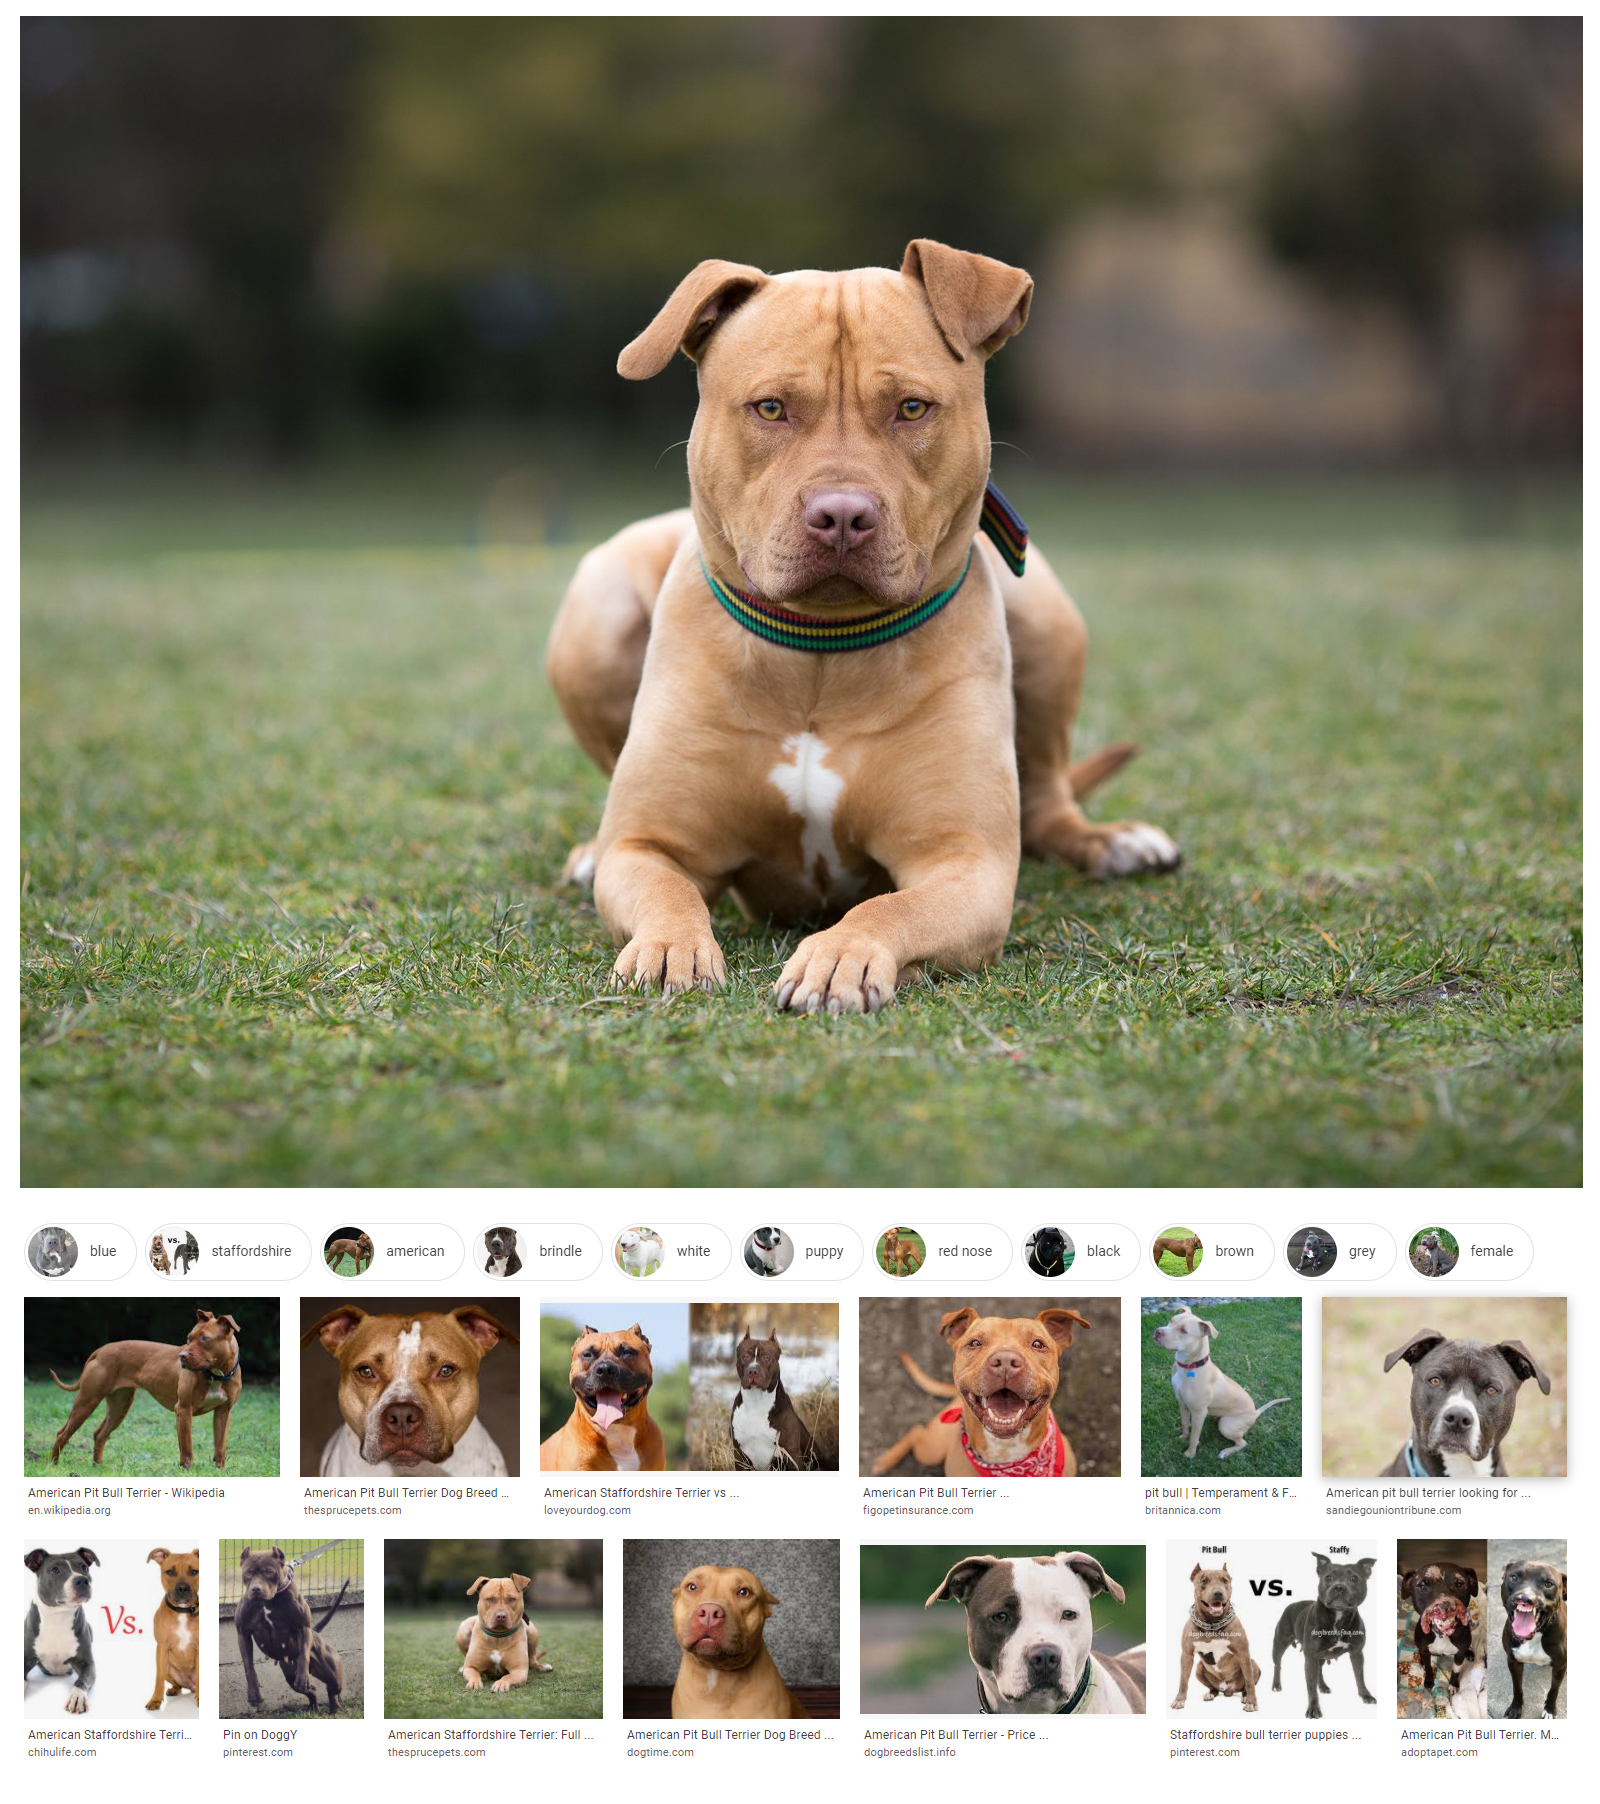 How Much Cost an American Pit Bull Terrier